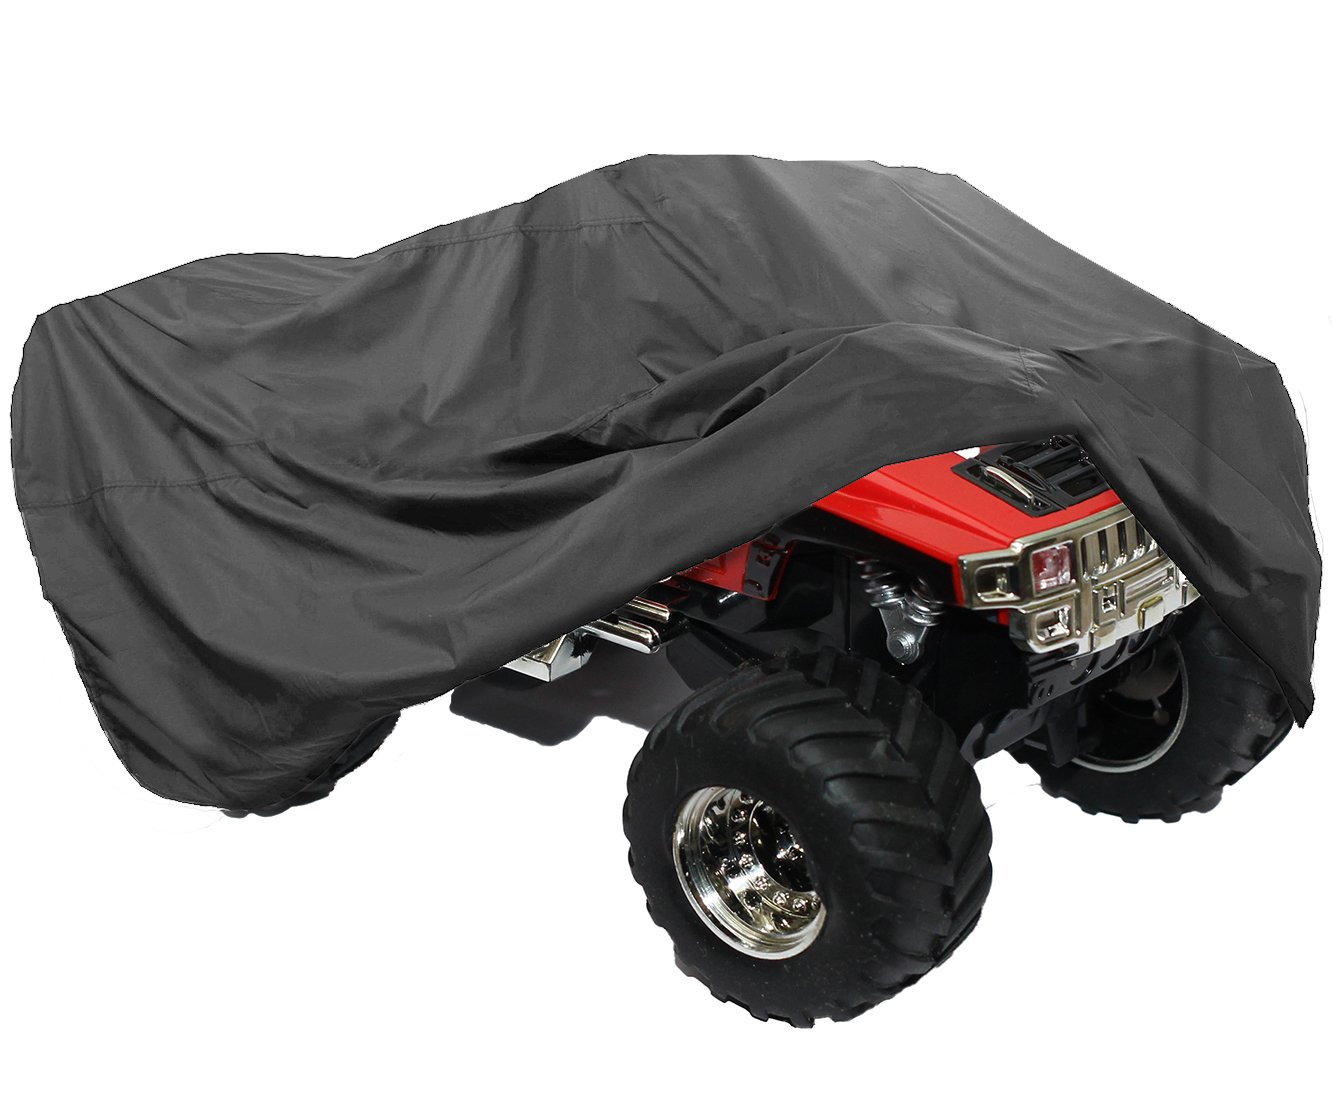 Best ATV Covers